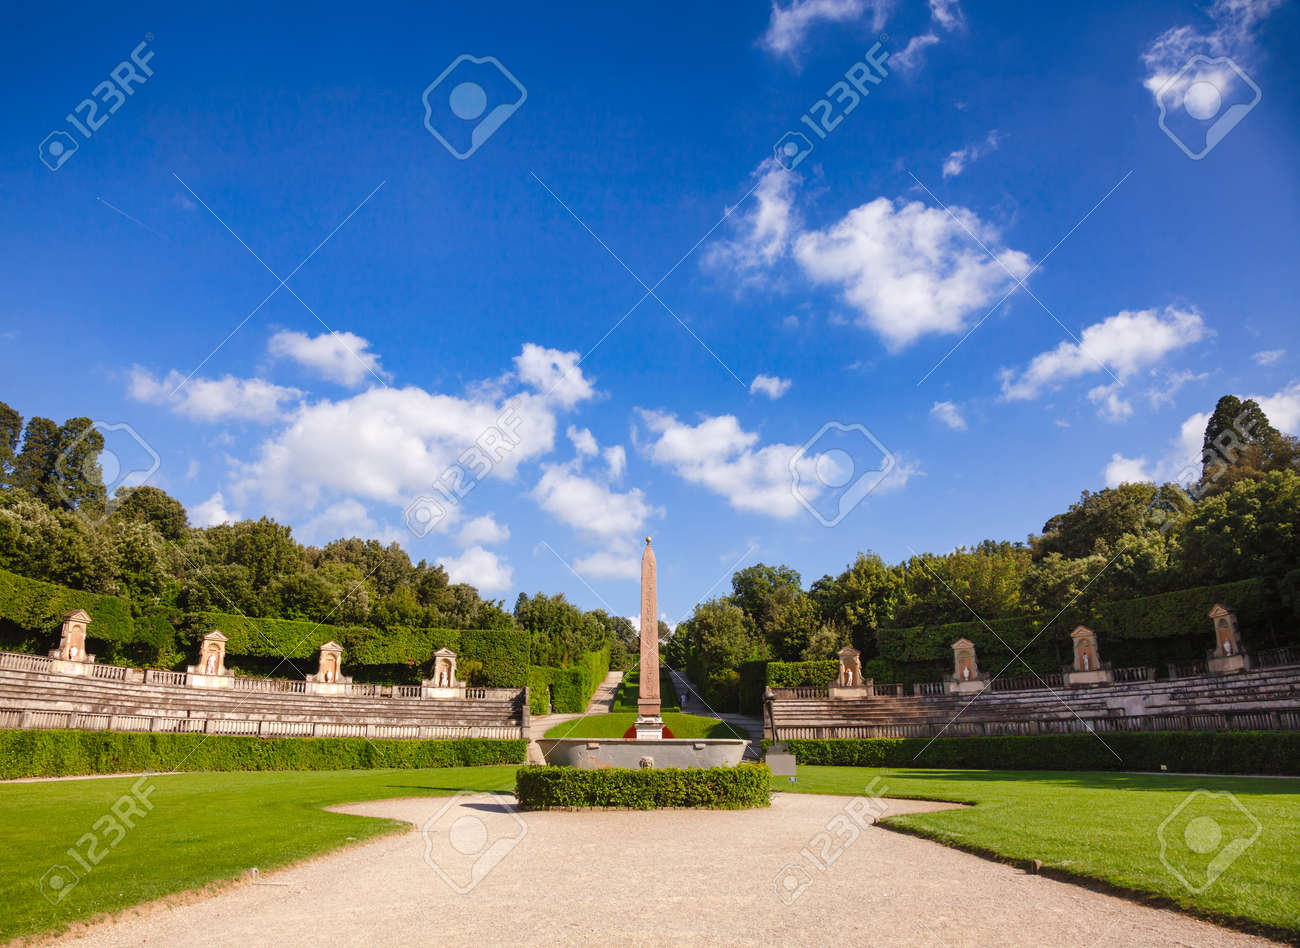 Boboli Gardens park primary axis amphitheater with Ancient Egyptian obelisk Florence, Tuscany, Italy - 167652419